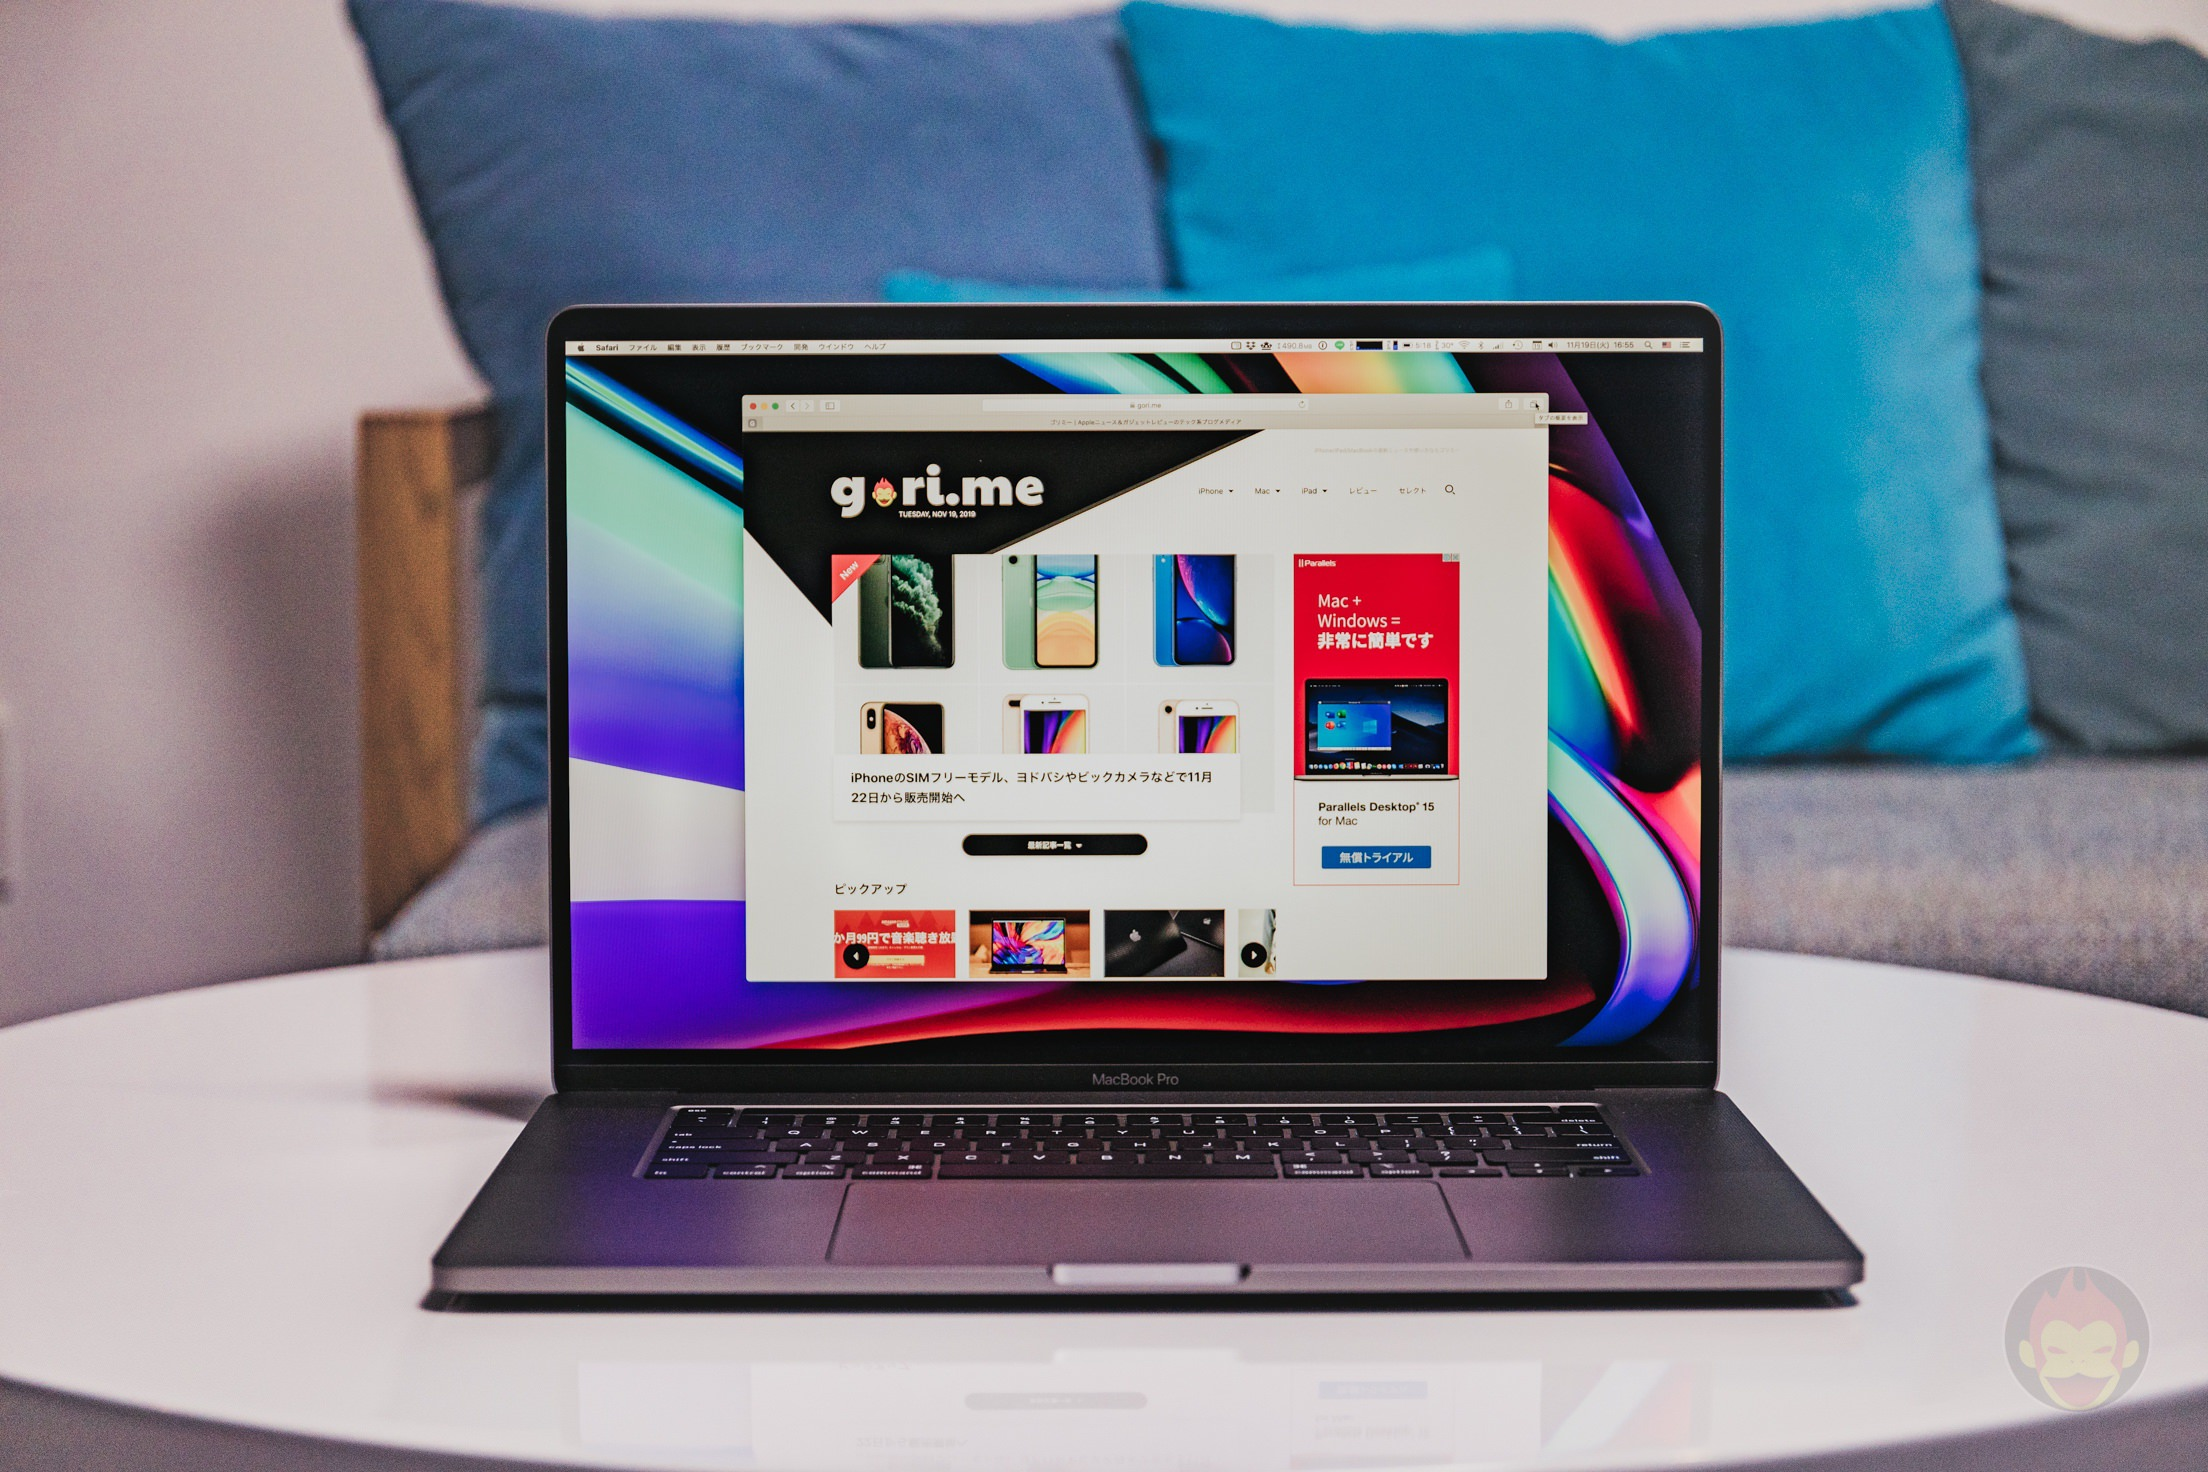 MacBook-Pro-2019-16inch-Review-GoriMe-Top